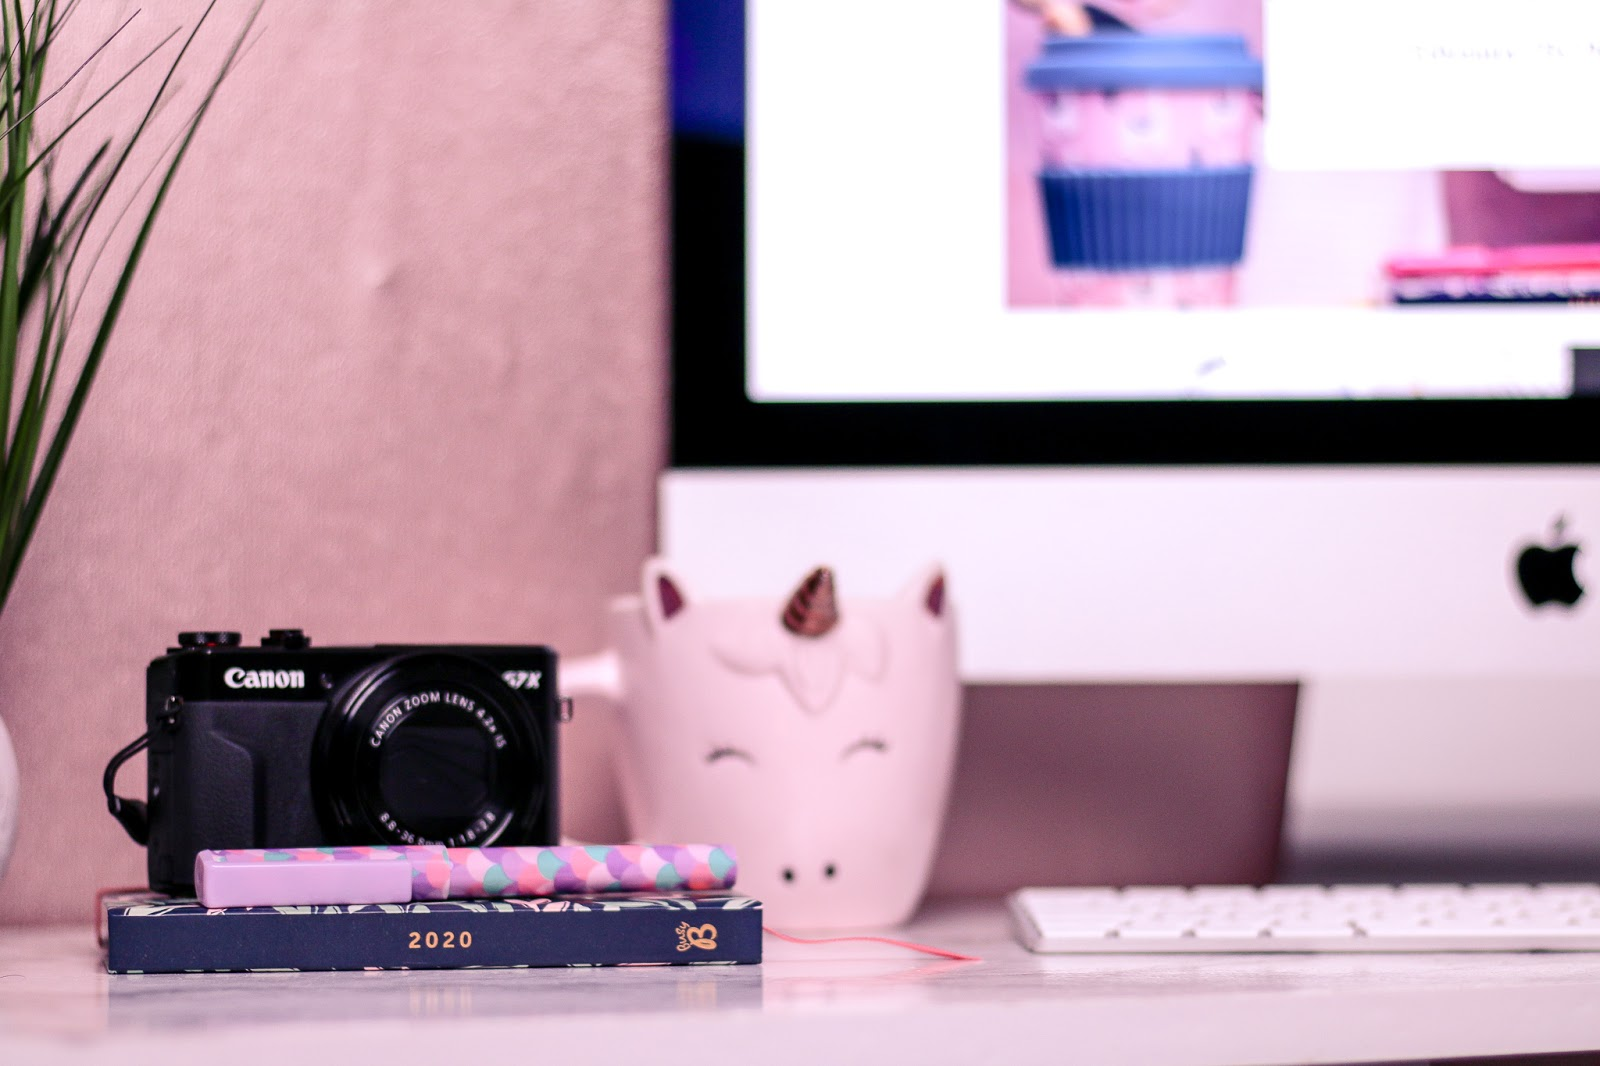 Medium close up of a computer desk with an iMac, black canon a7x camera, pink unicorn mug and 2020 diary on the desk.